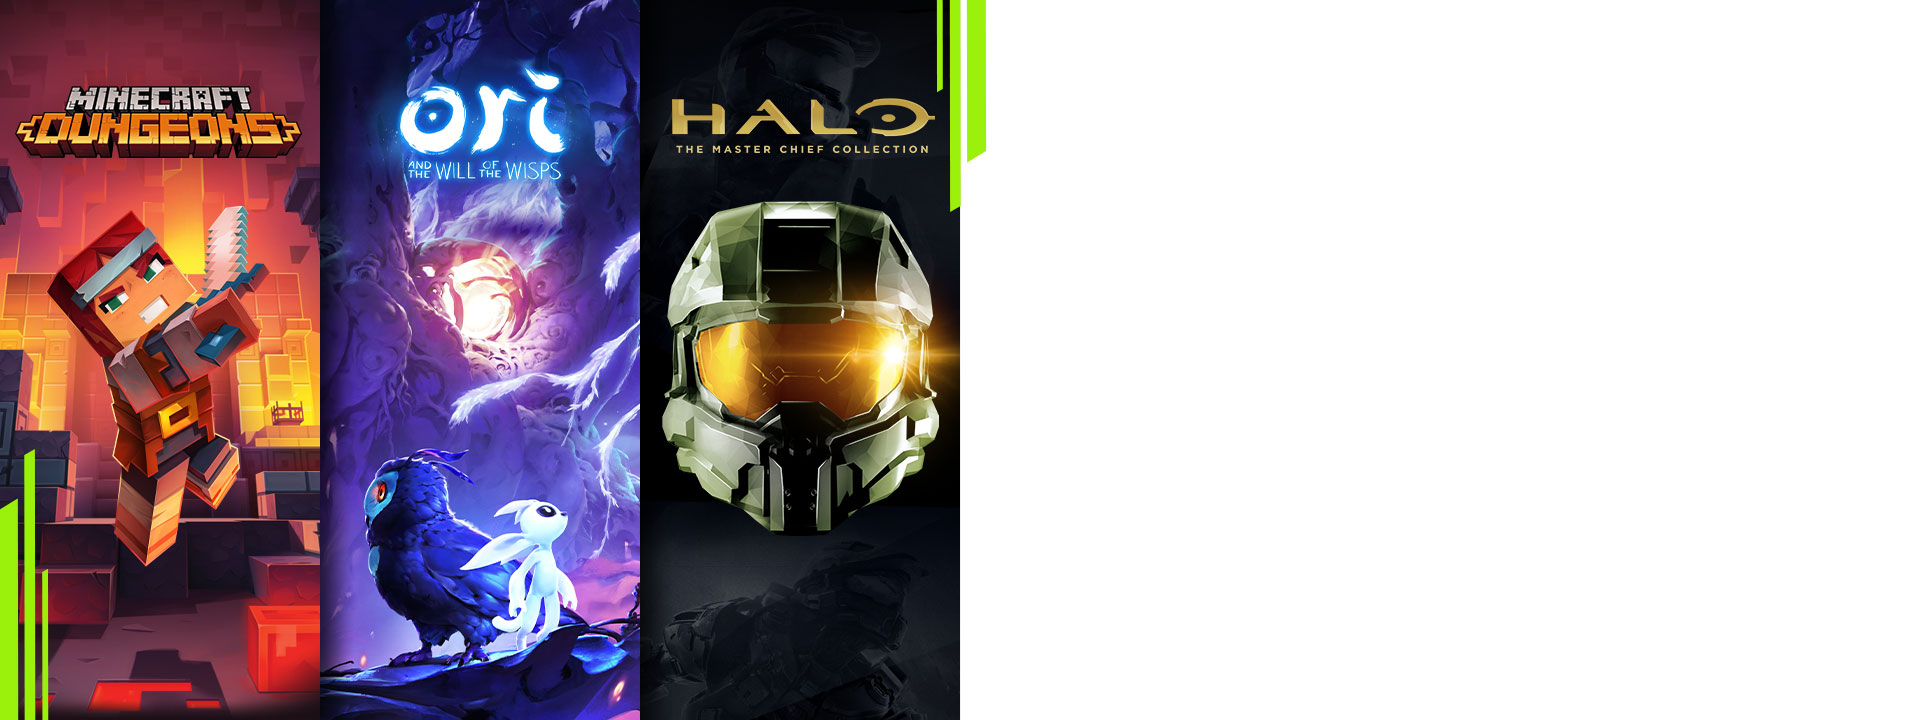 Images and characters from Minecraft Dungeons, Ori and the Will of the Wisps, and Halo: The Master Chief Collection